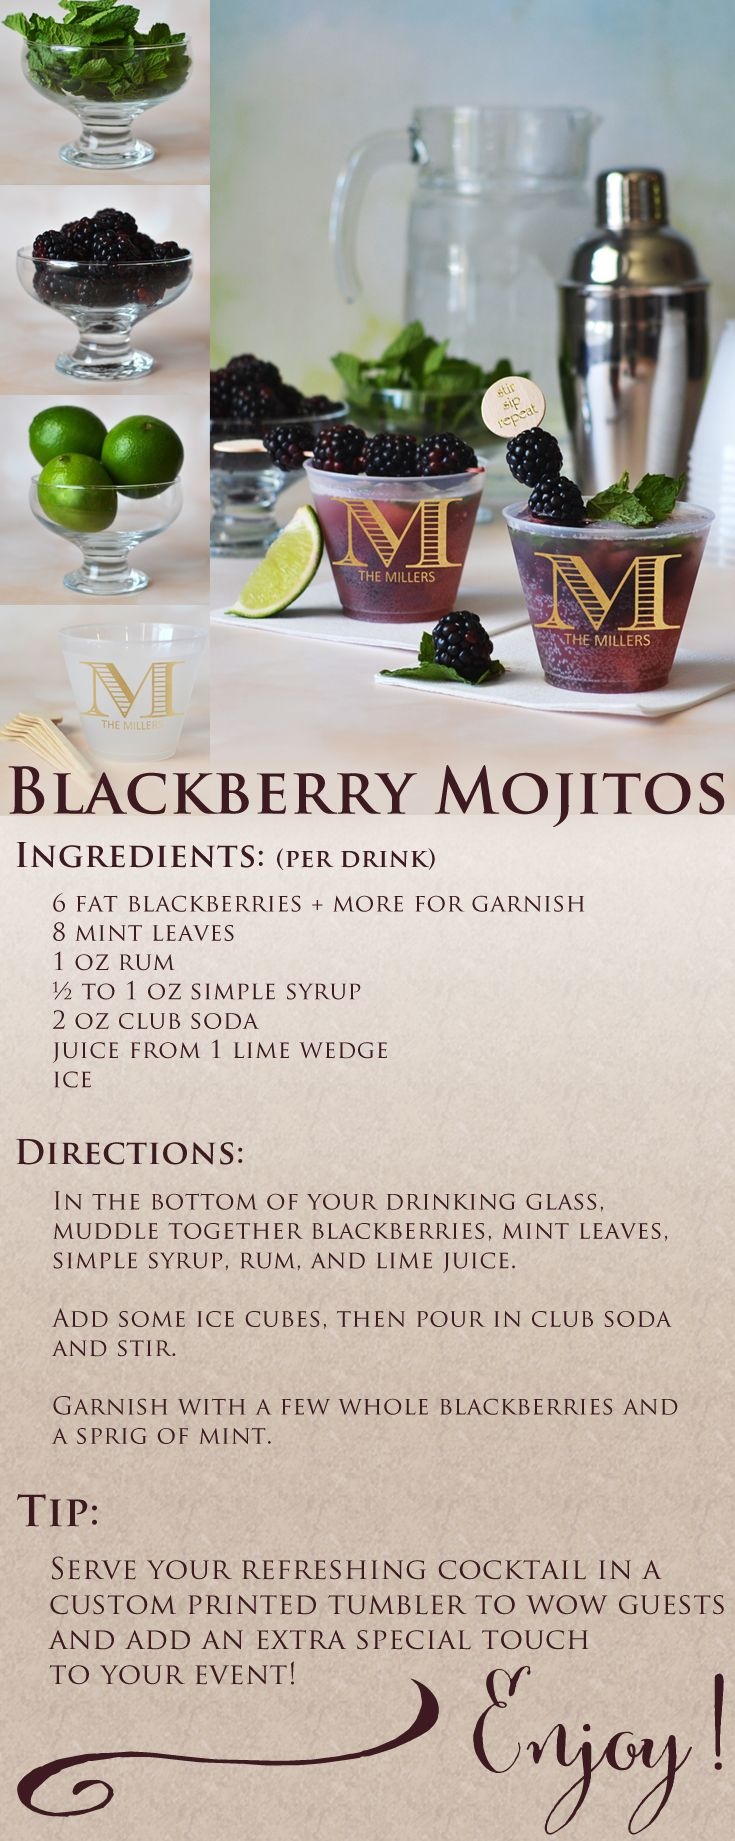 This blackberry Mojito recipe is a refreshing and colorful alcoholic beverage guests will love. Stock your wedding reception bar with fresh ingredients listed. Serve your wedding cocktails in frosted 9 ounce cups personalized with a monogram or wedding design, the bride and groom's name and wedding date to wow guests and add an extra special touch to your wedding celebration. These personalized cups can be ordered at…